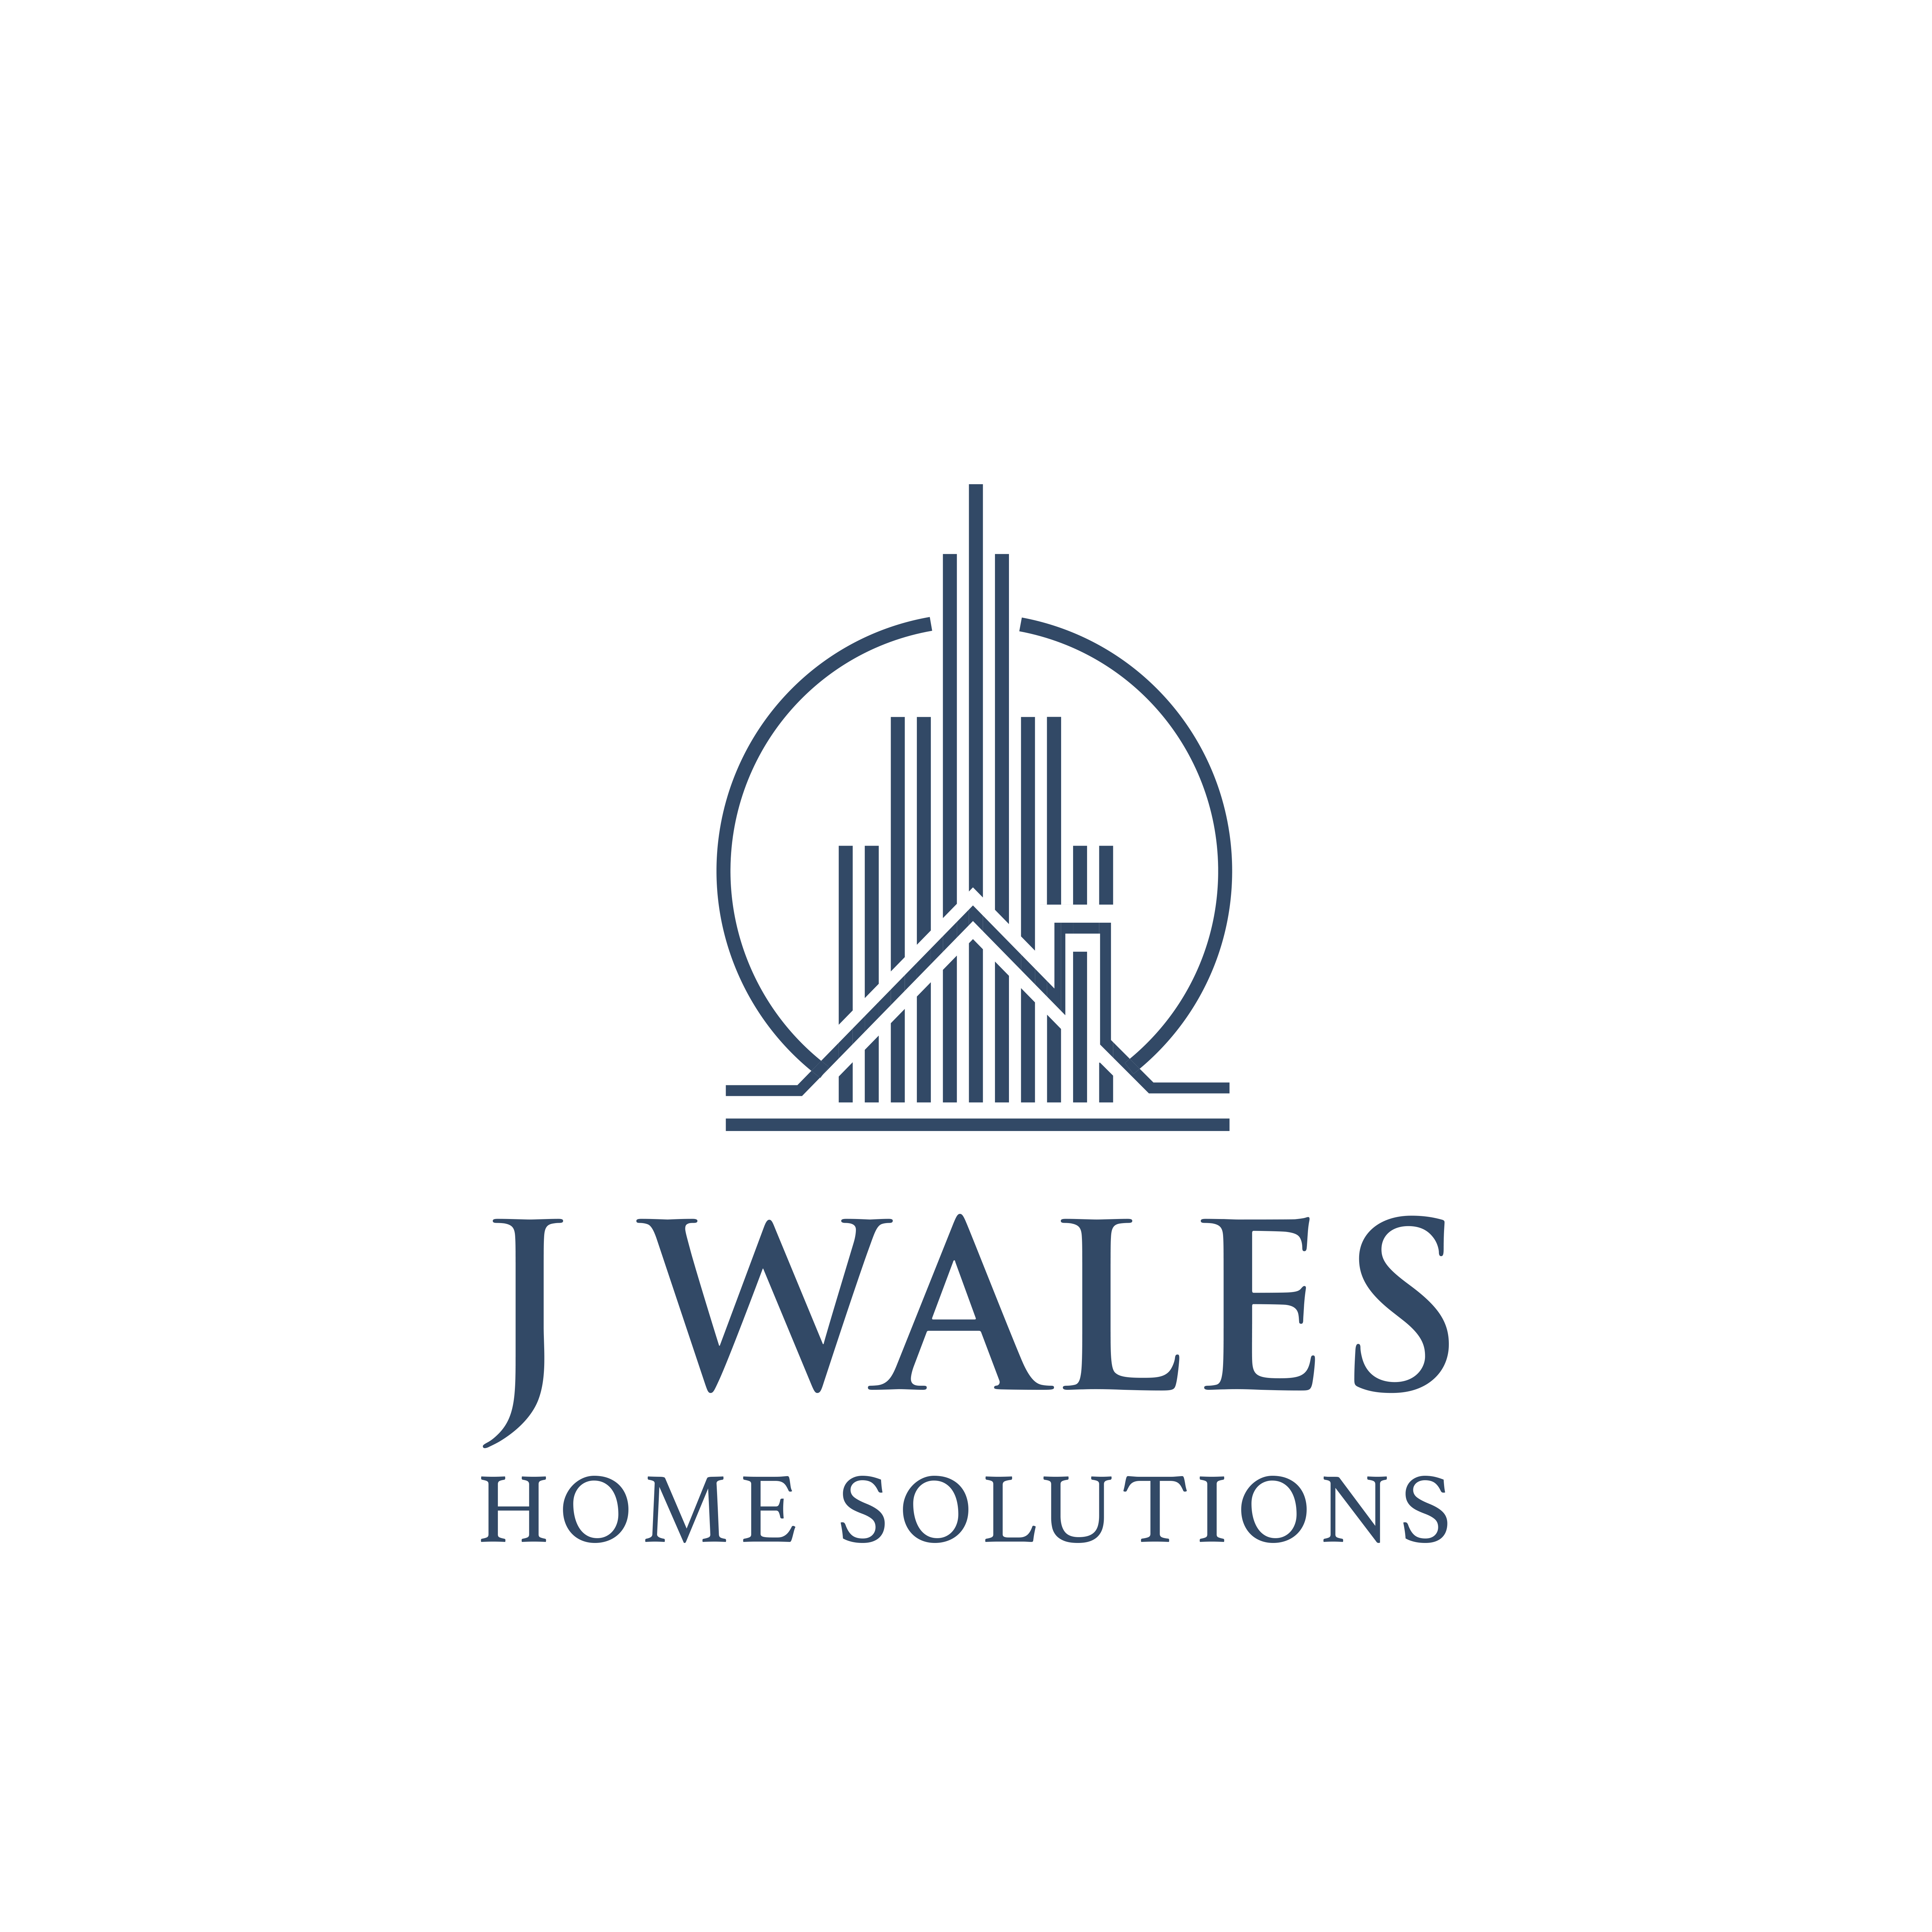 J Wales Home Solutions